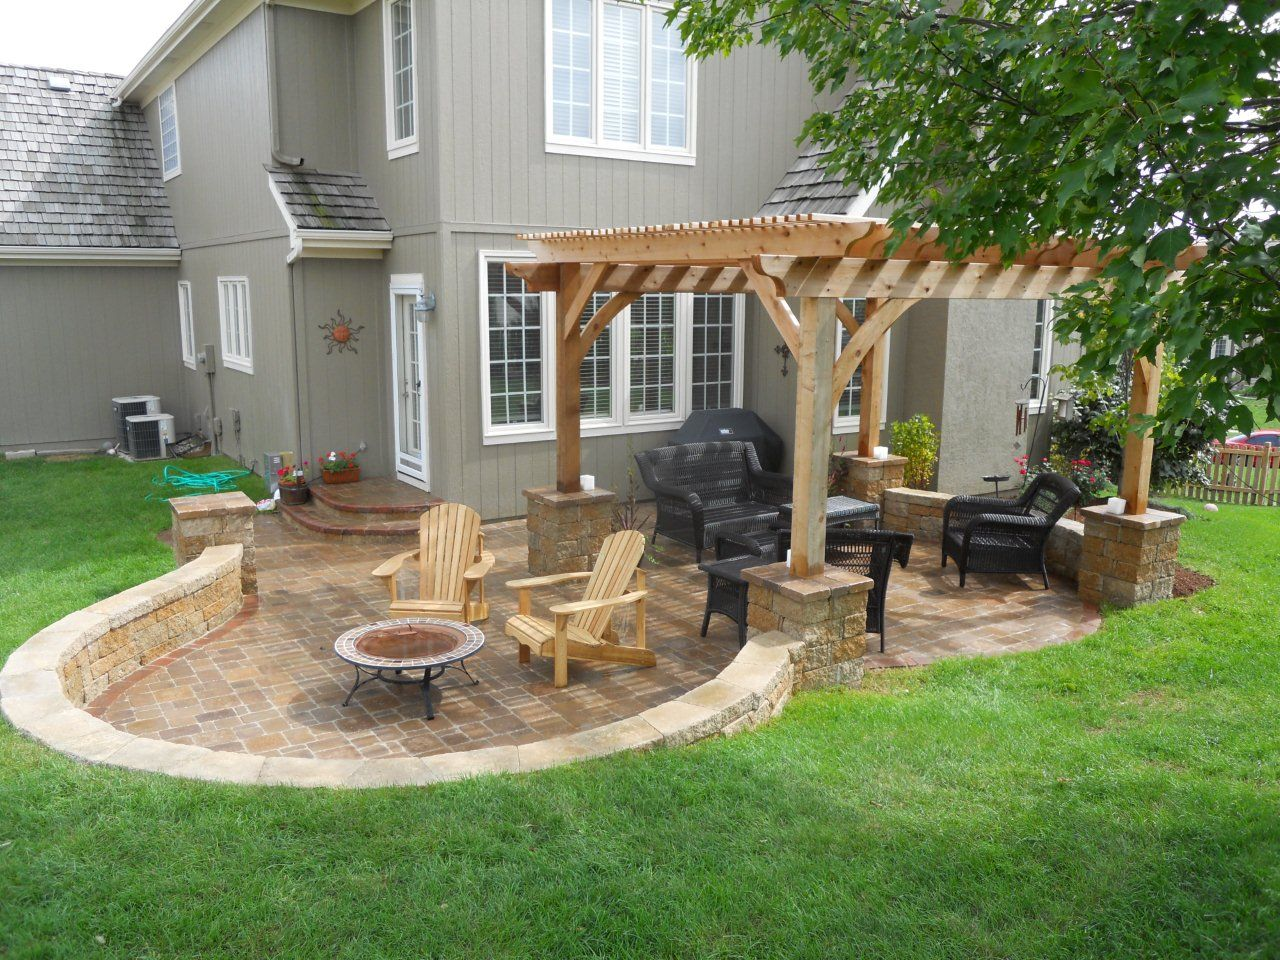 Best 25+ Backyard patio ideas on Pinterest | Backyard makeover ...